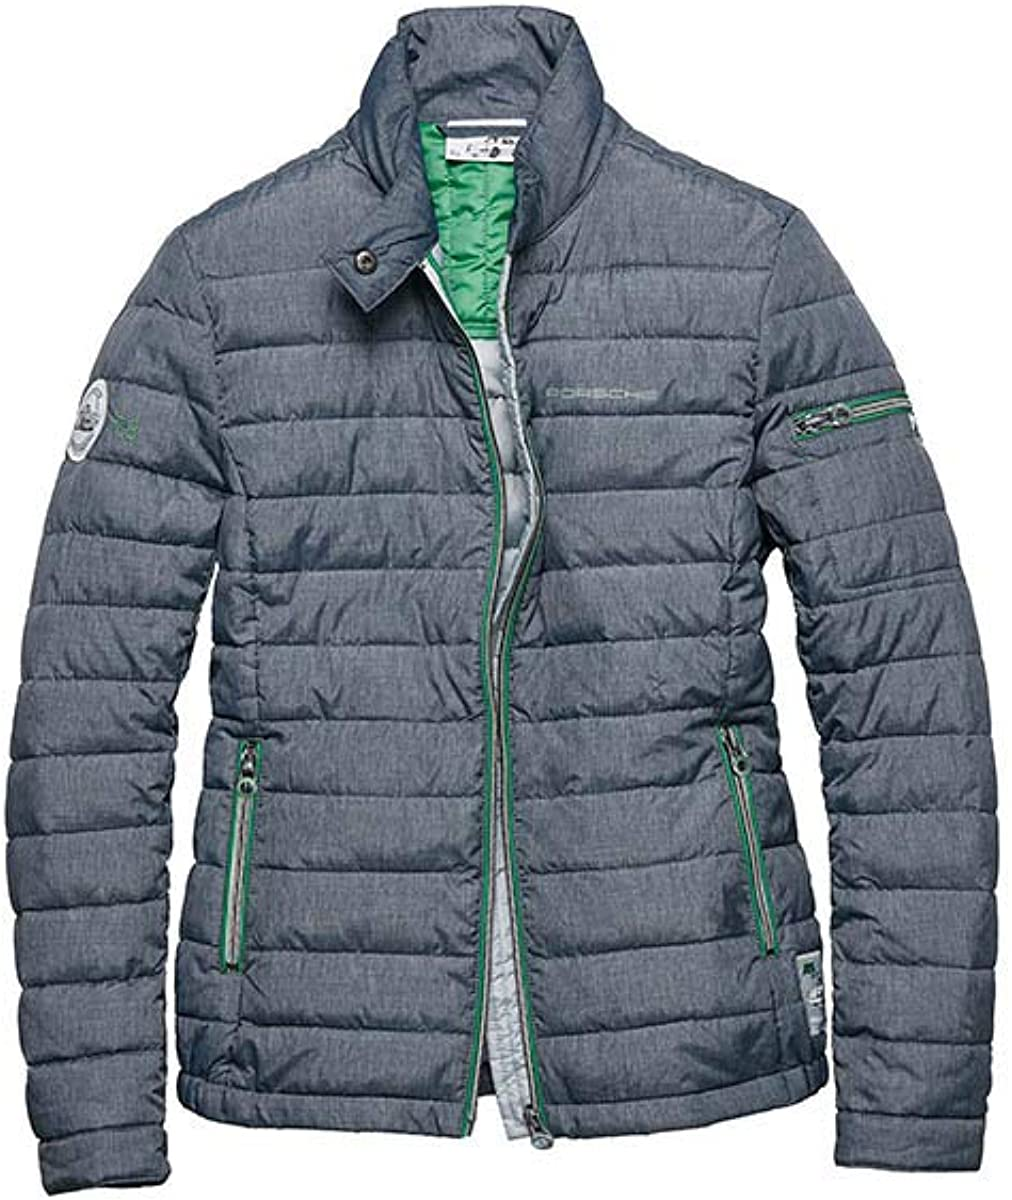 Porsche Driver's Selection Women's Quilted Auto Sports Jacket Gray